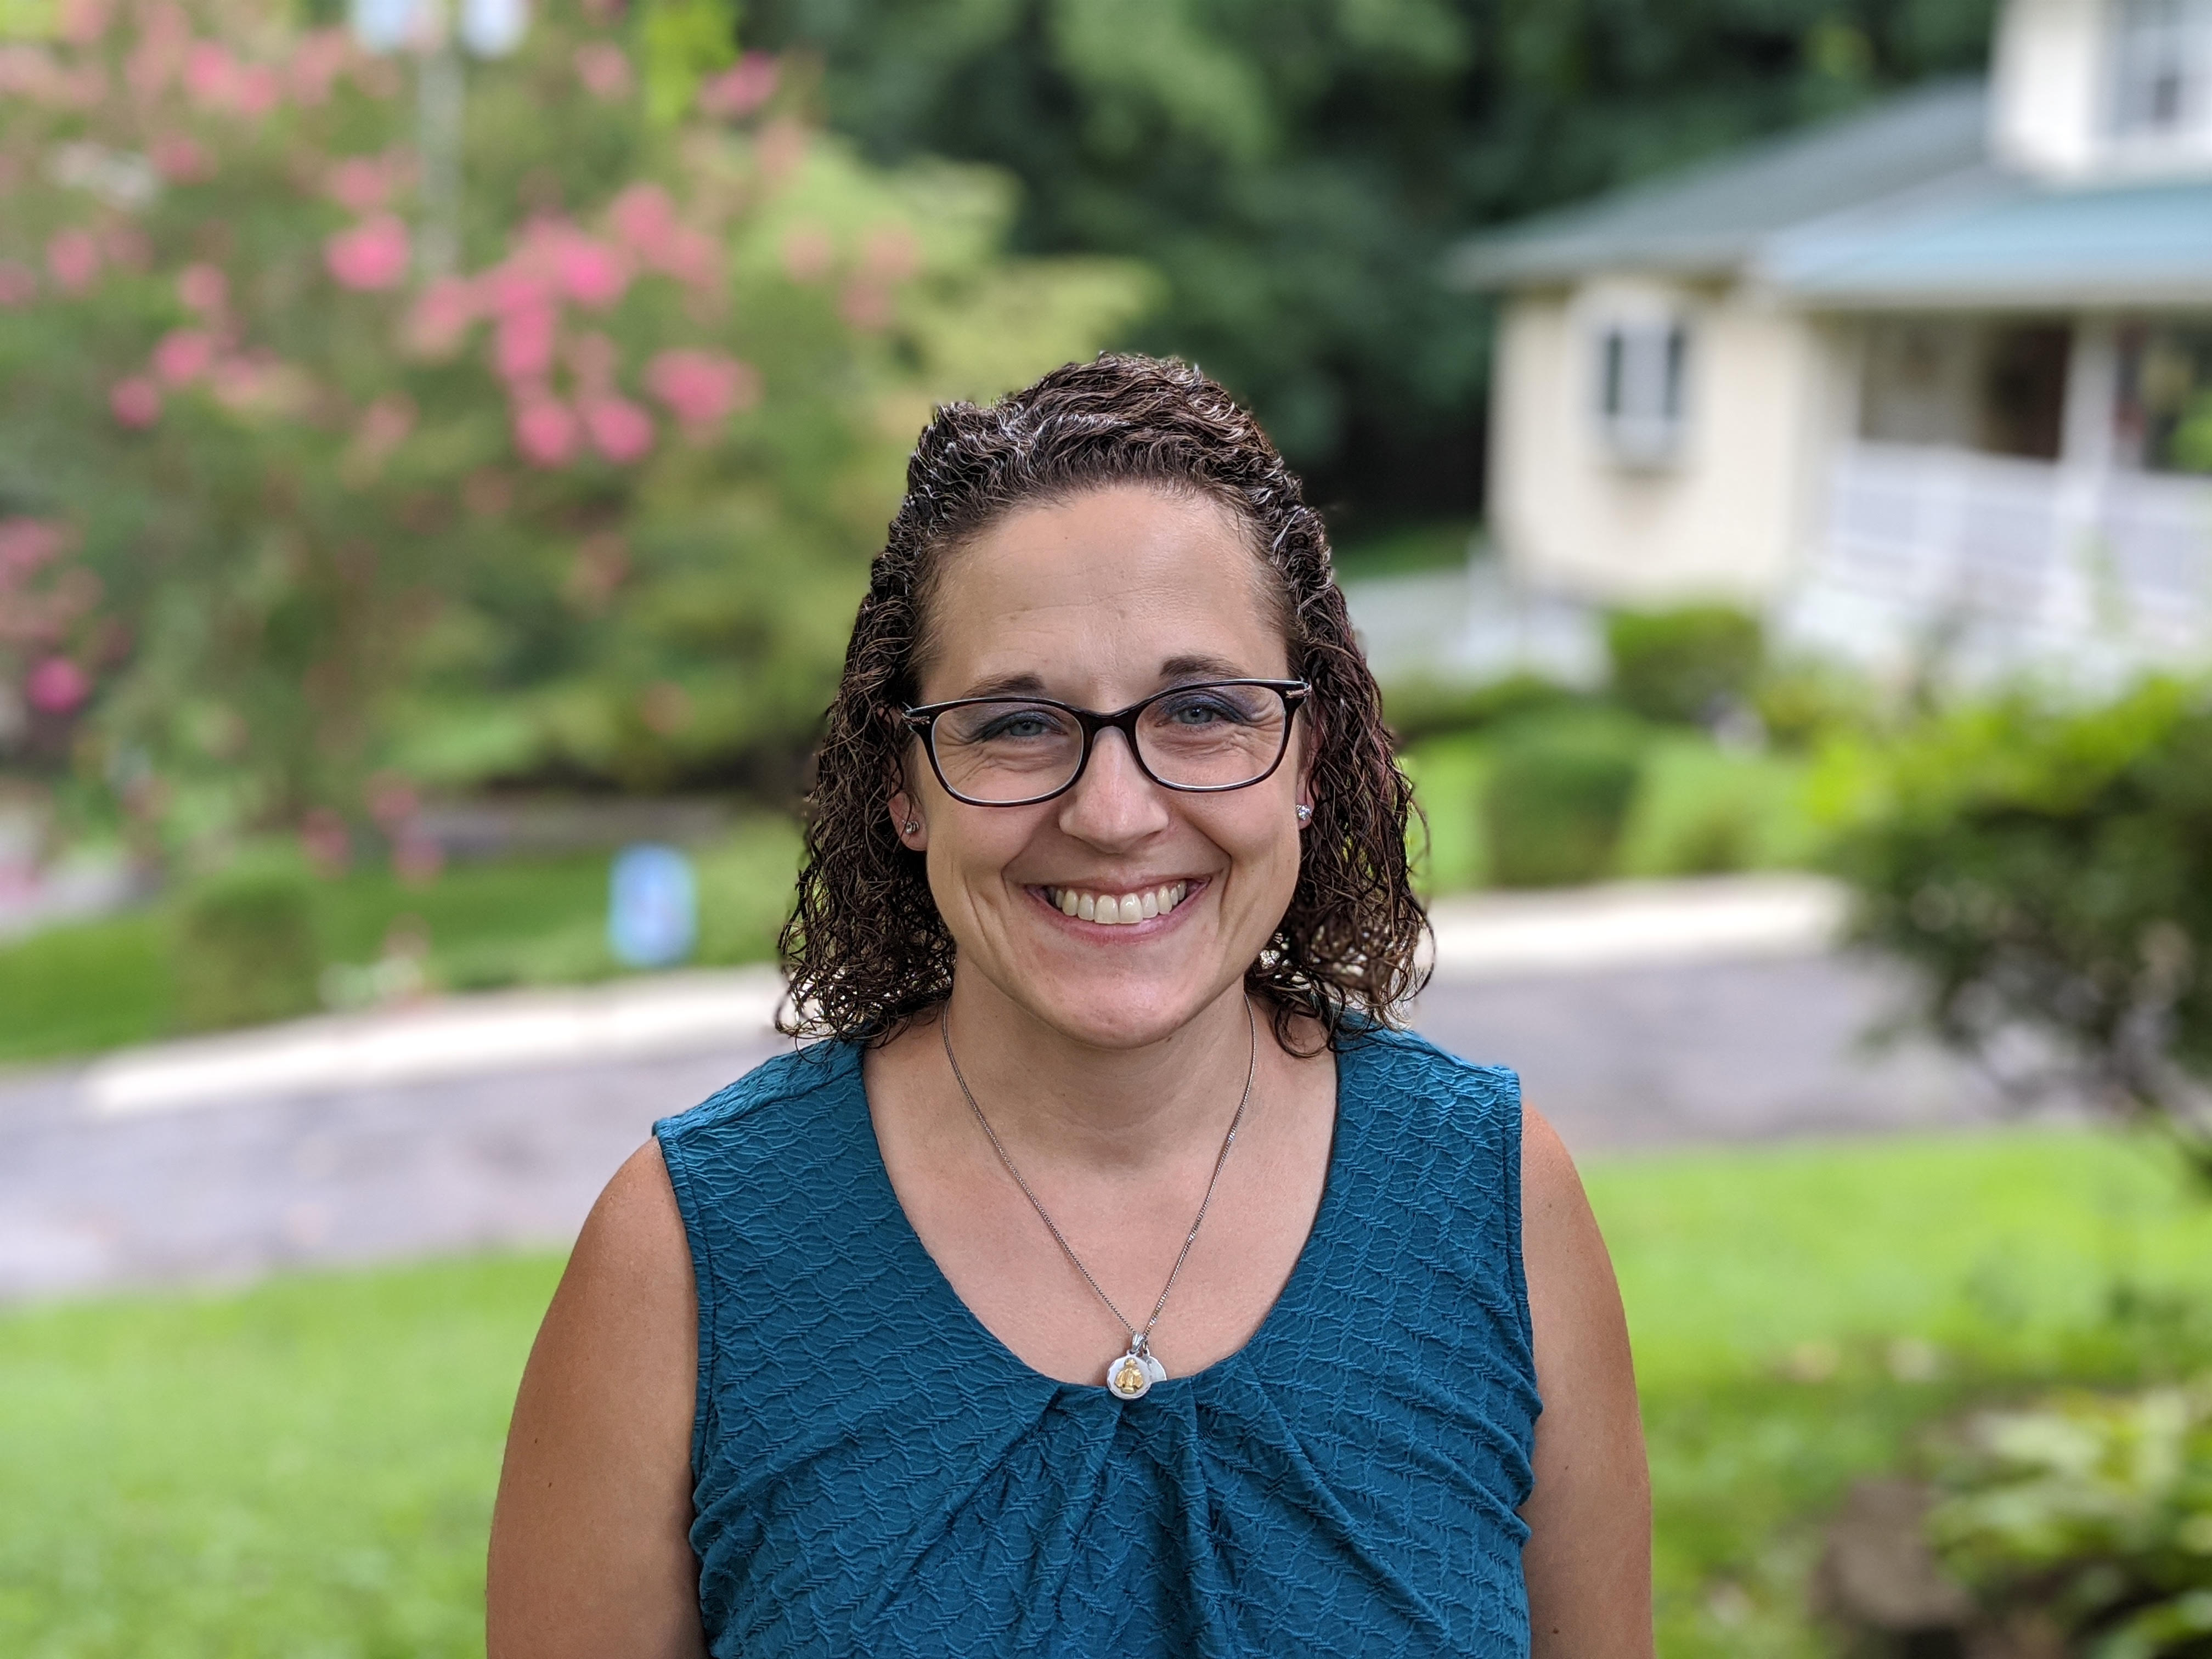 Congratulation to Dr. Tara Carpenter on being promoted to Principal Lecturer